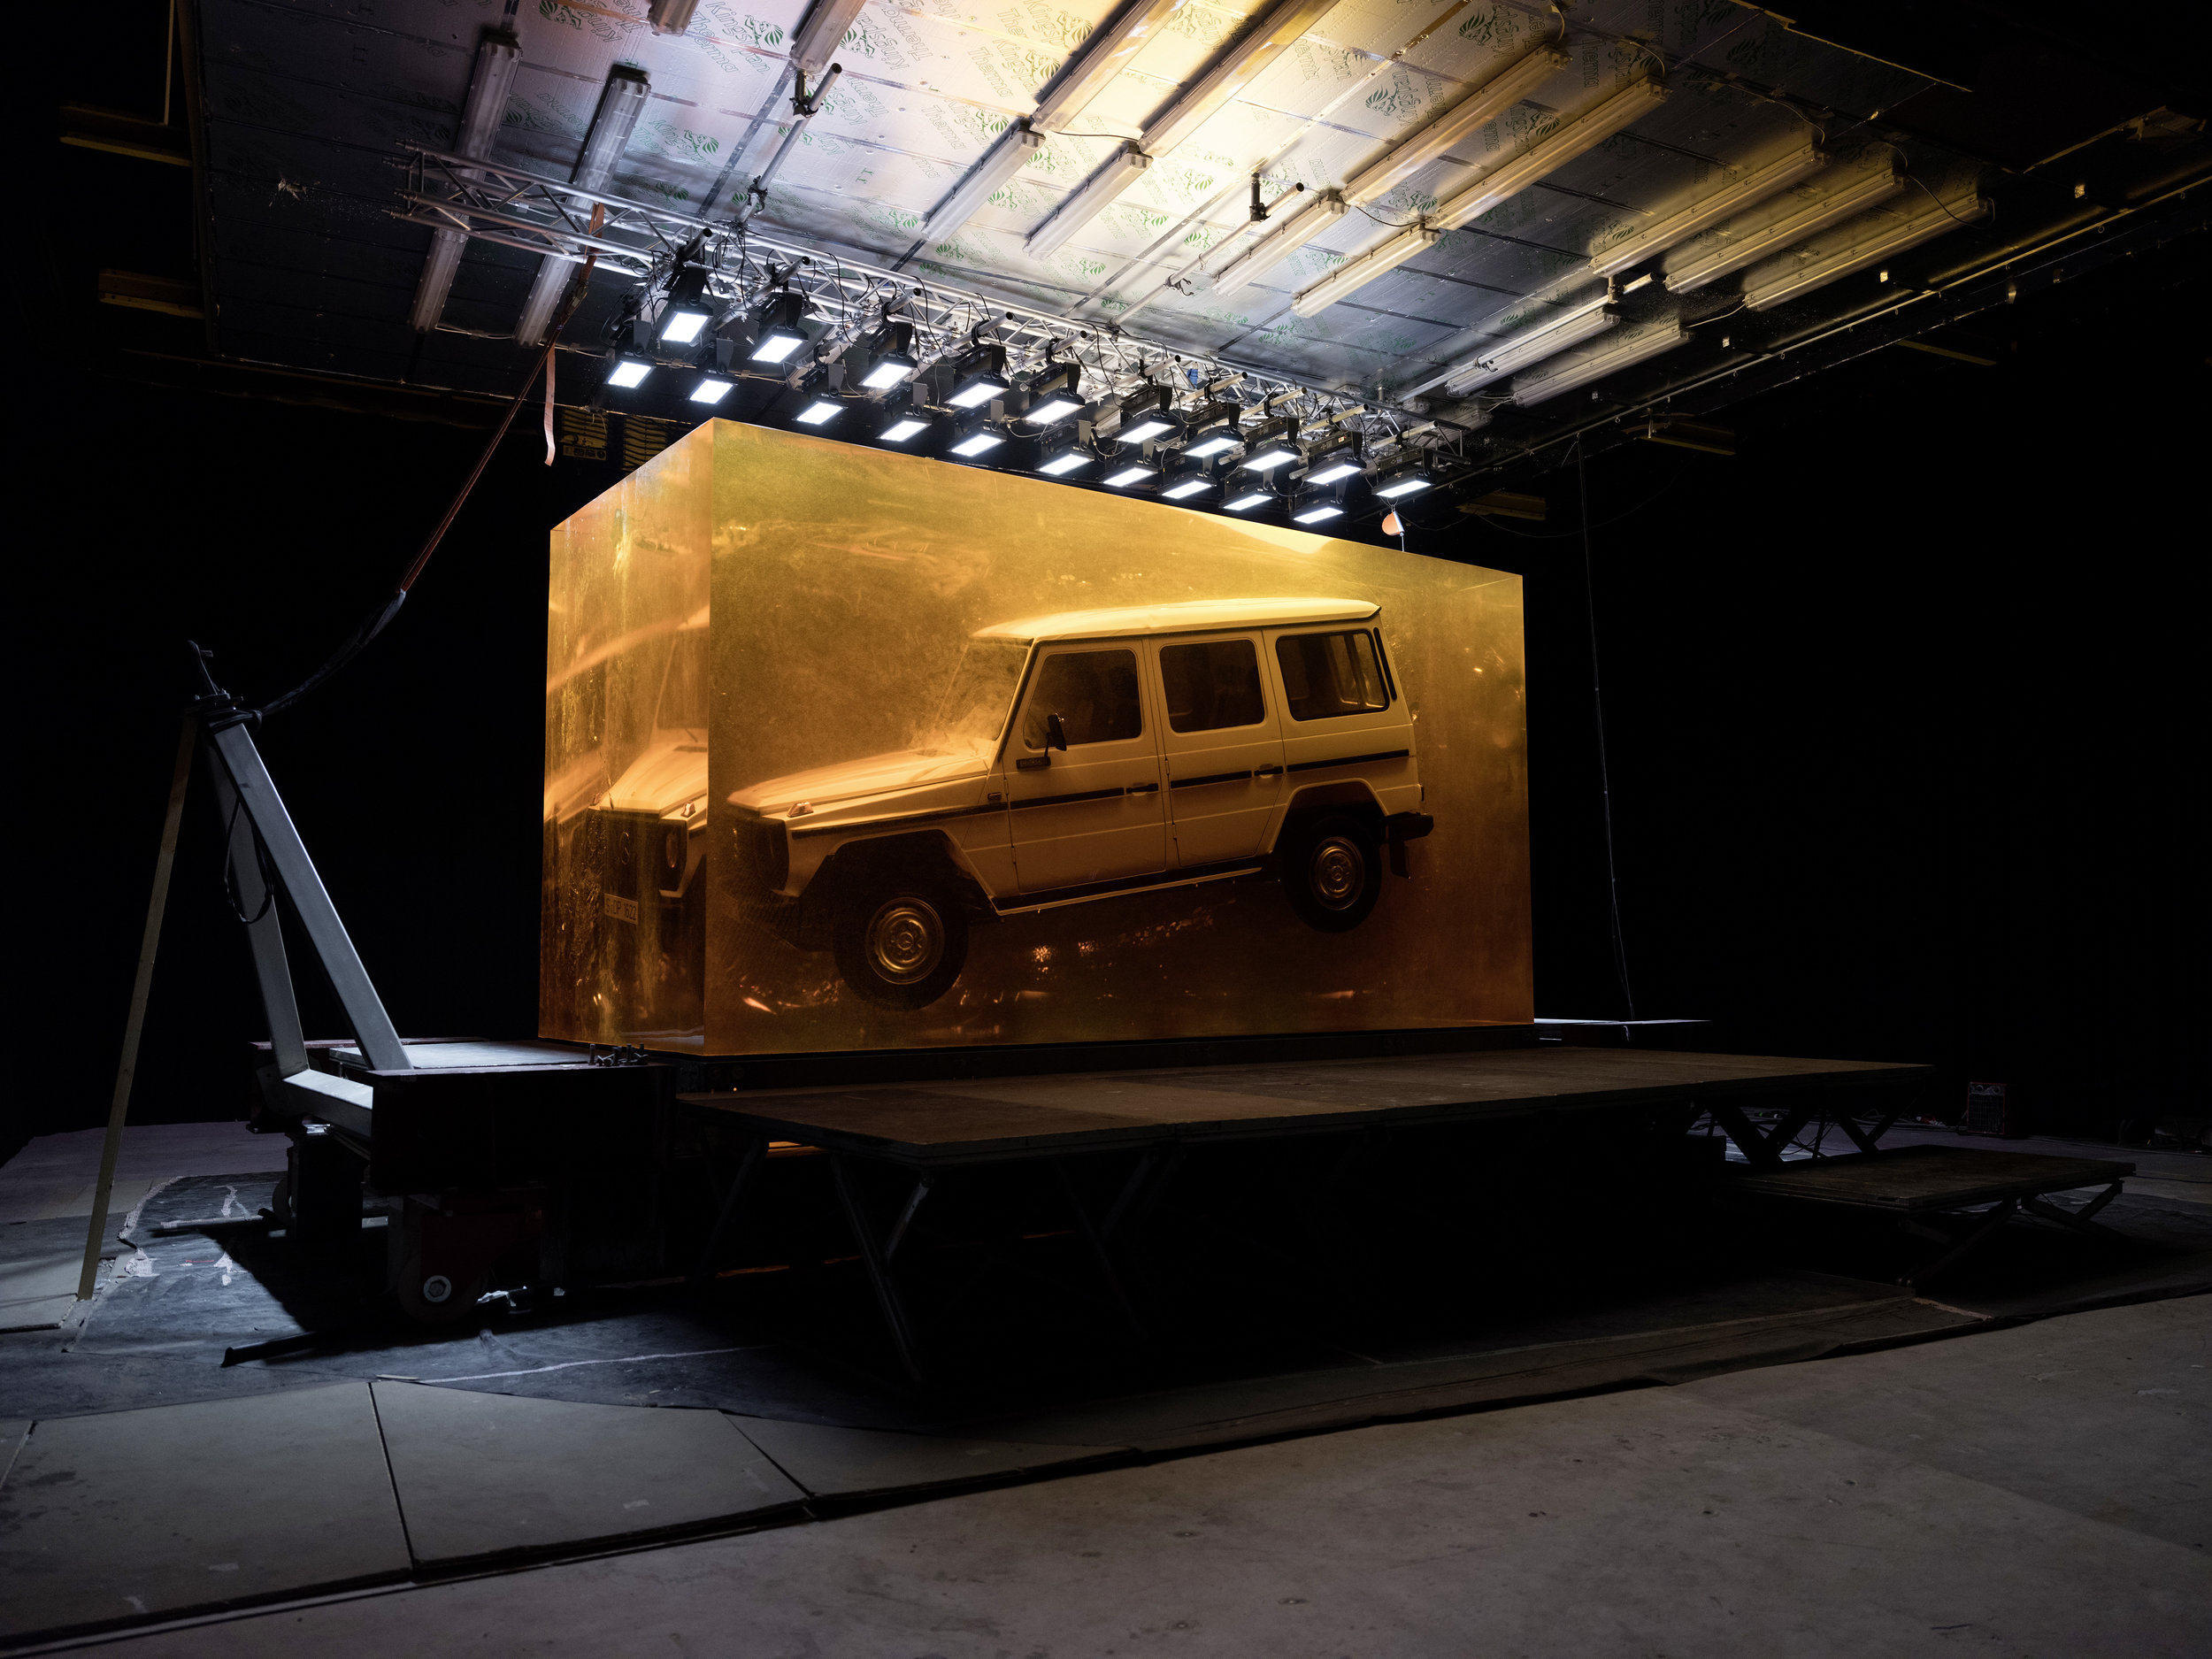 The DNA of the G-Class